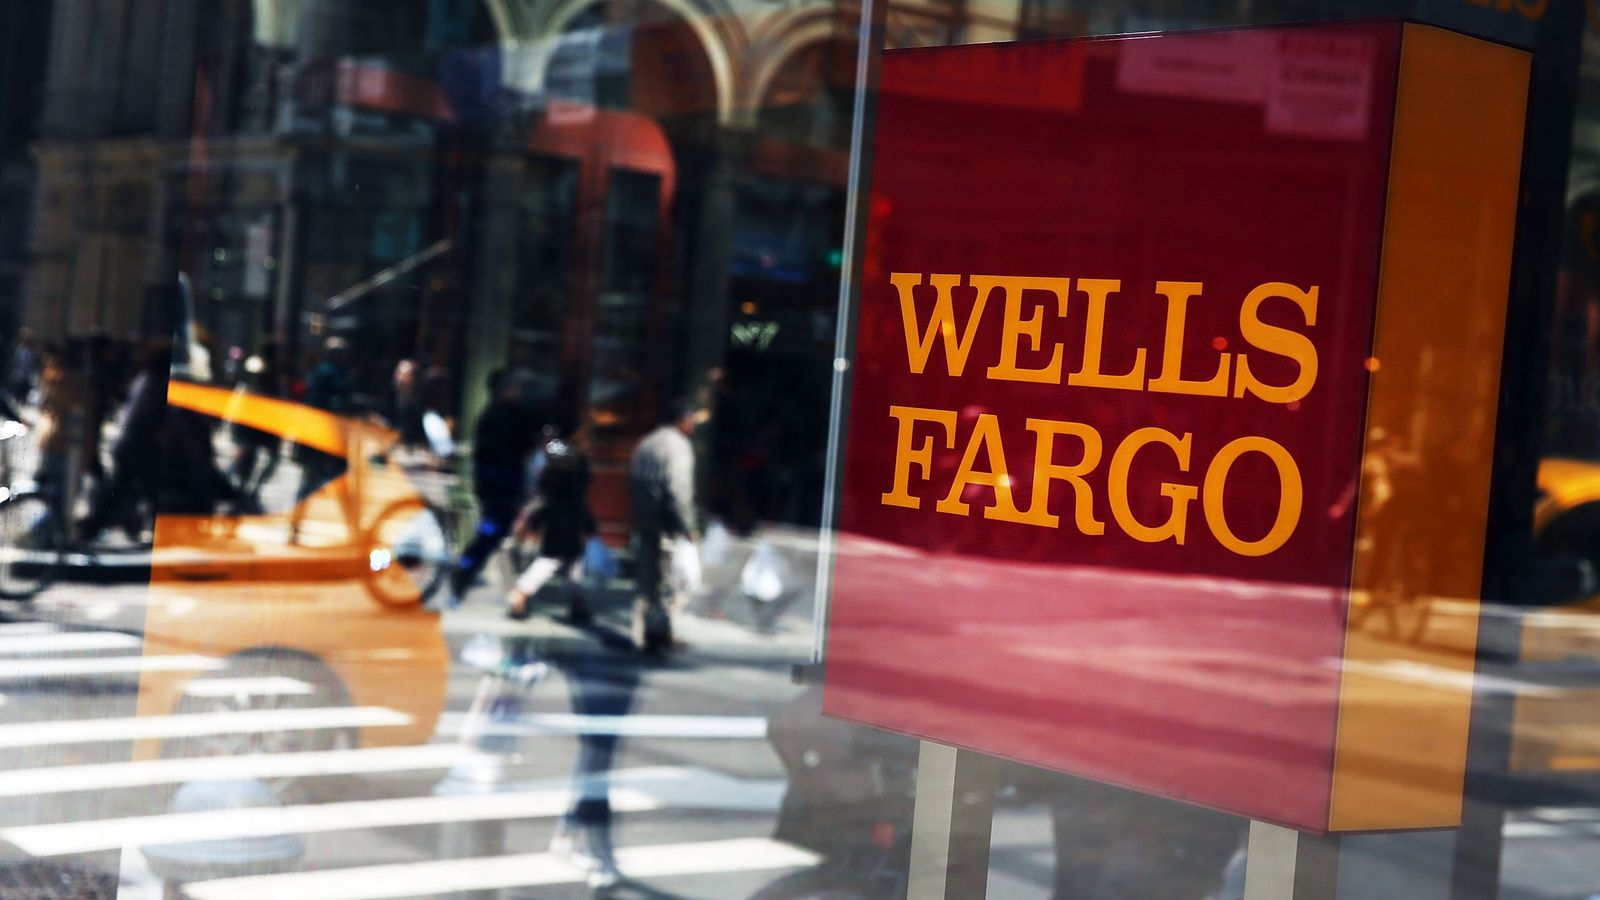 Wells Fargo crimes, Wells Fargo accounts scam, Wells Fargo foreclosures, mortgage-backed securities, subprime loans, Wall Street crimes, John Stumpf